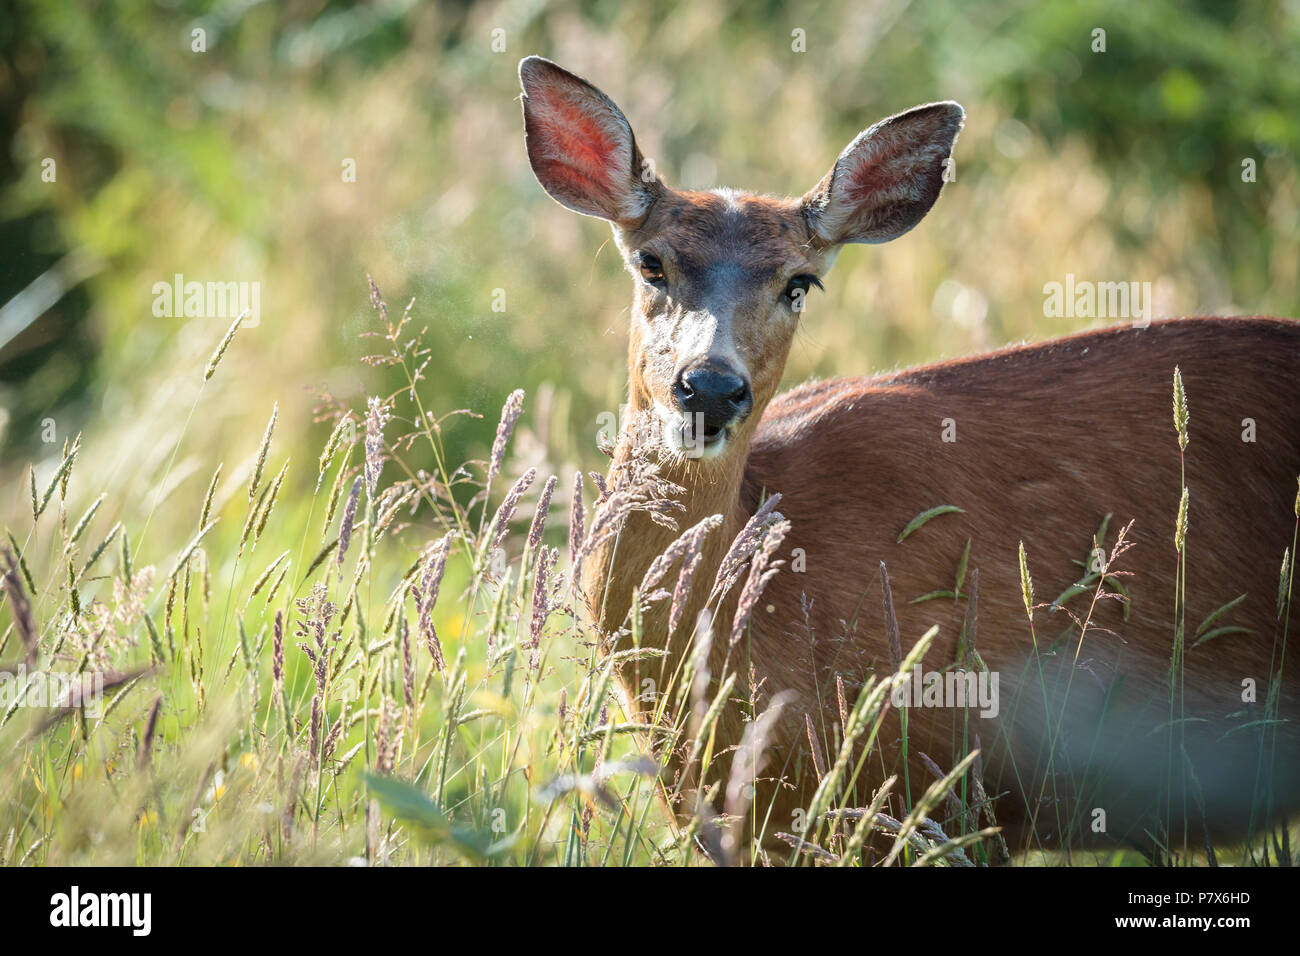 A black tailed deer, Odocoileus hemionus columbianus, behind some grass in Astoria, Oregon. - Stock Image